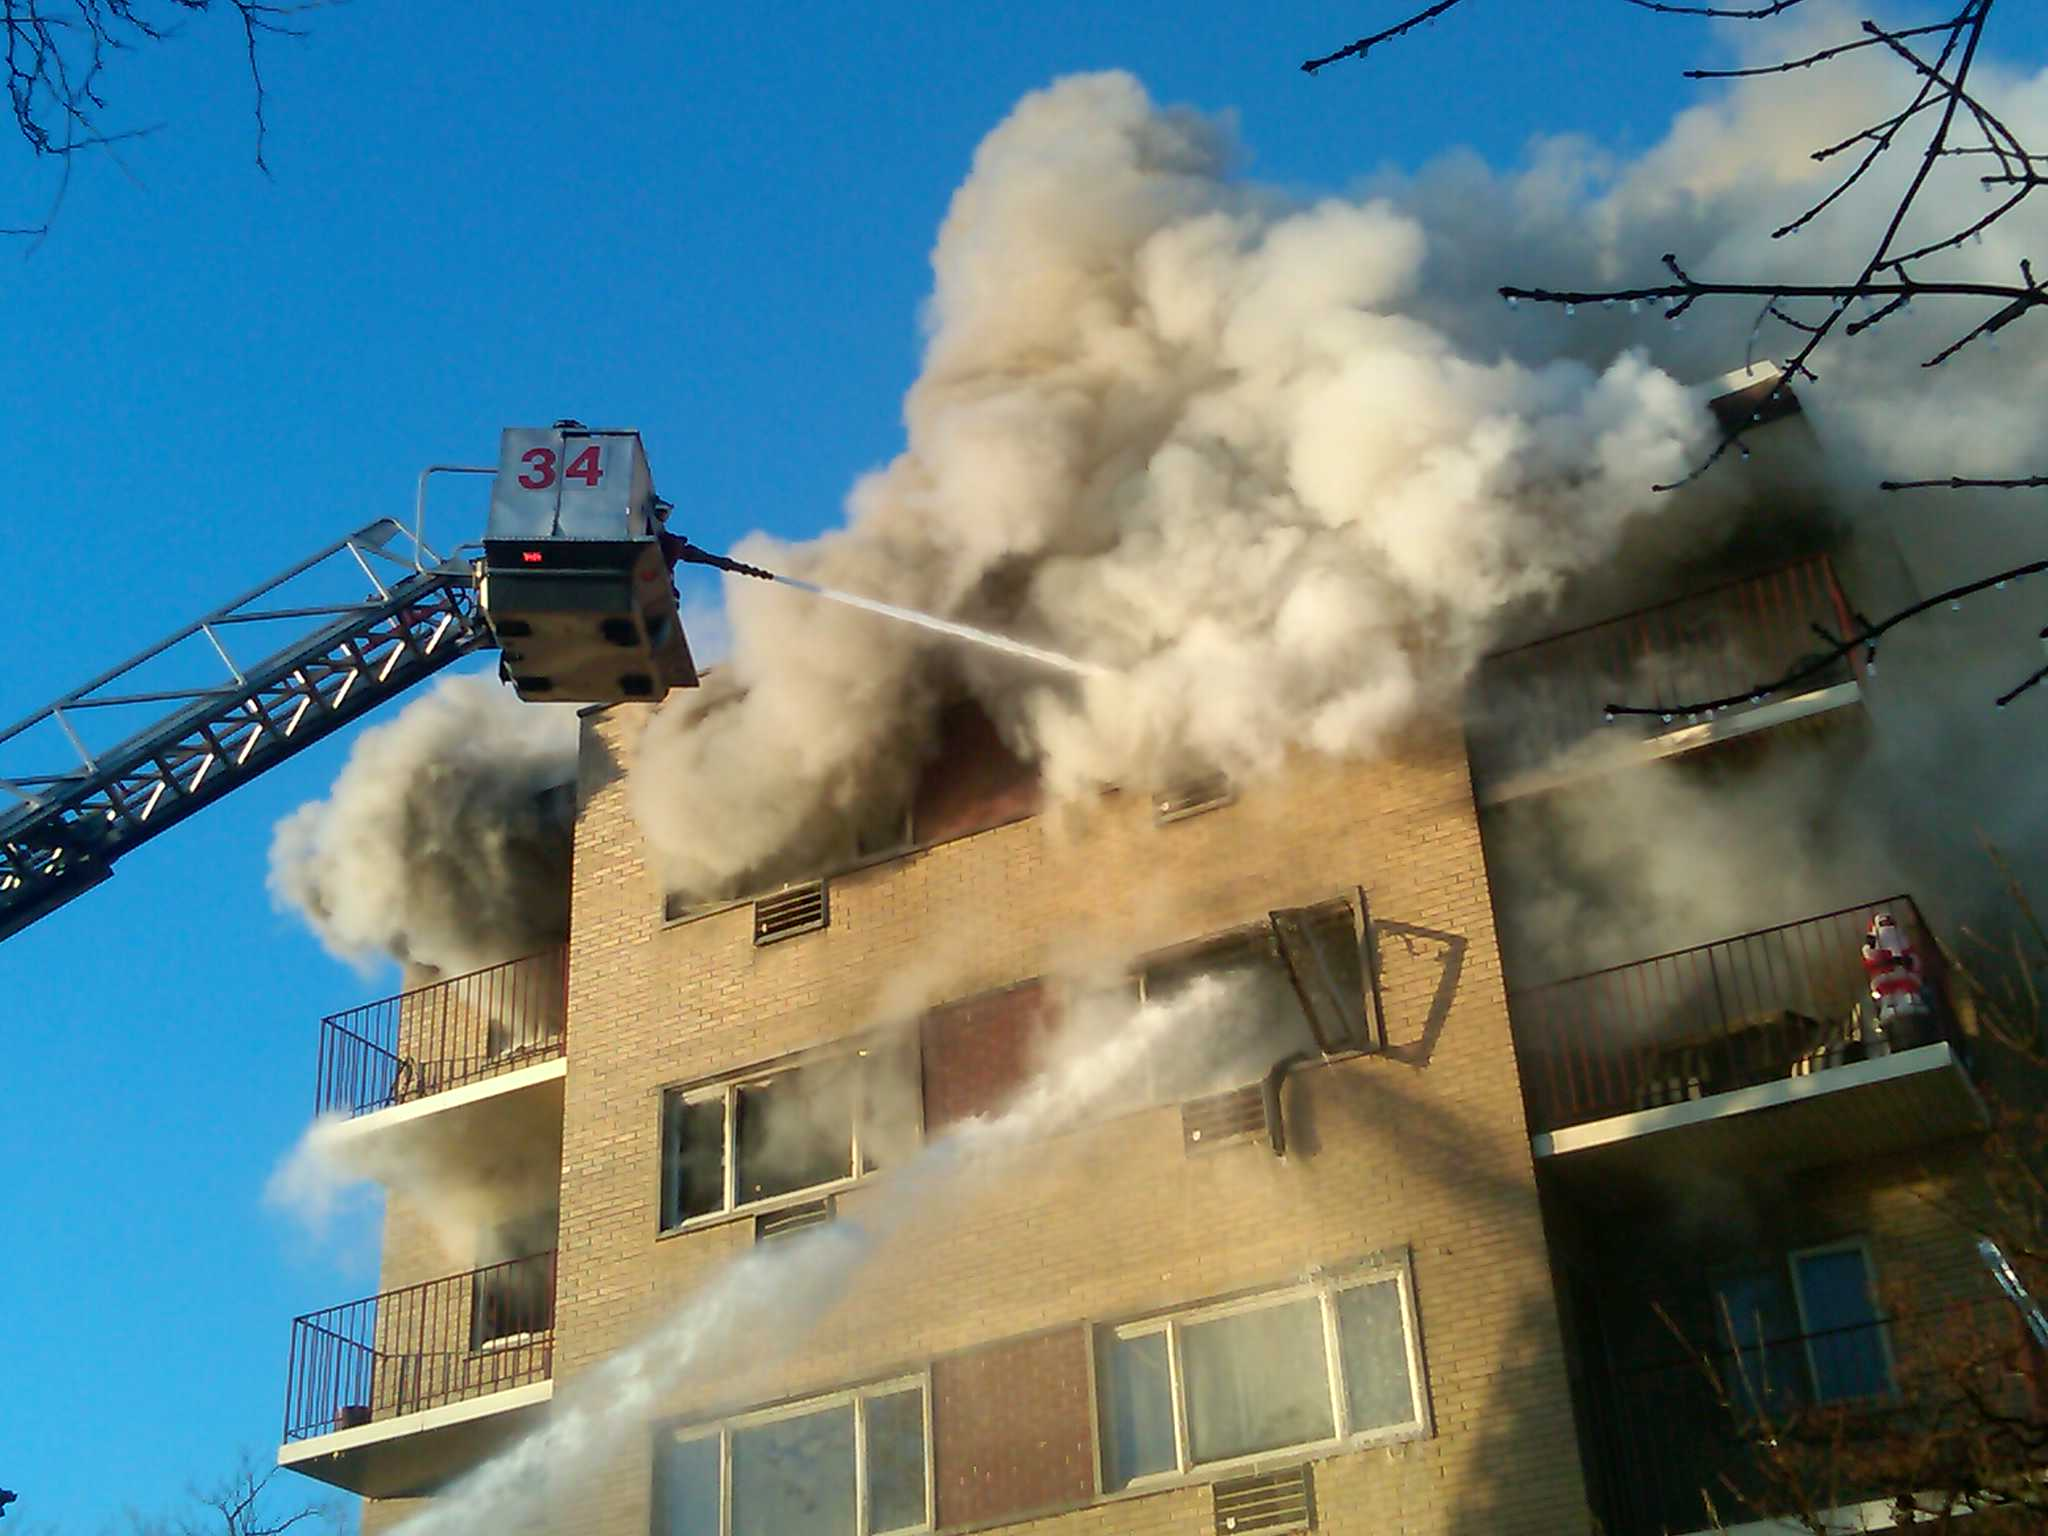 Chicago 2-11 Alarm fire 11-24-12